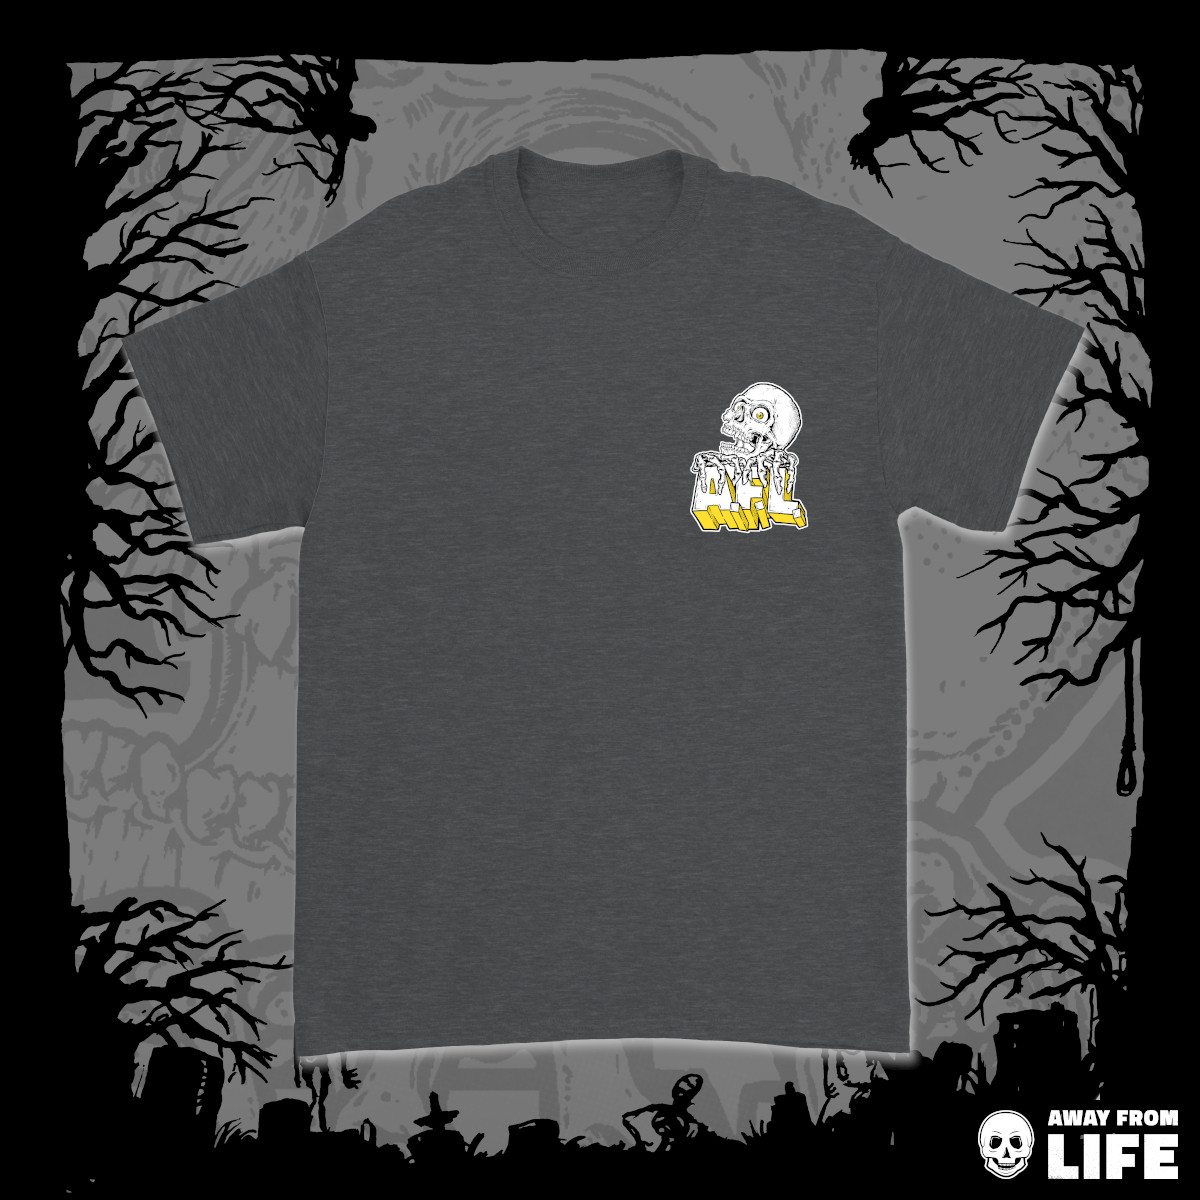 AWAY FROM LIFE - Reaper [dunkelgraues T-Shirt, Front]